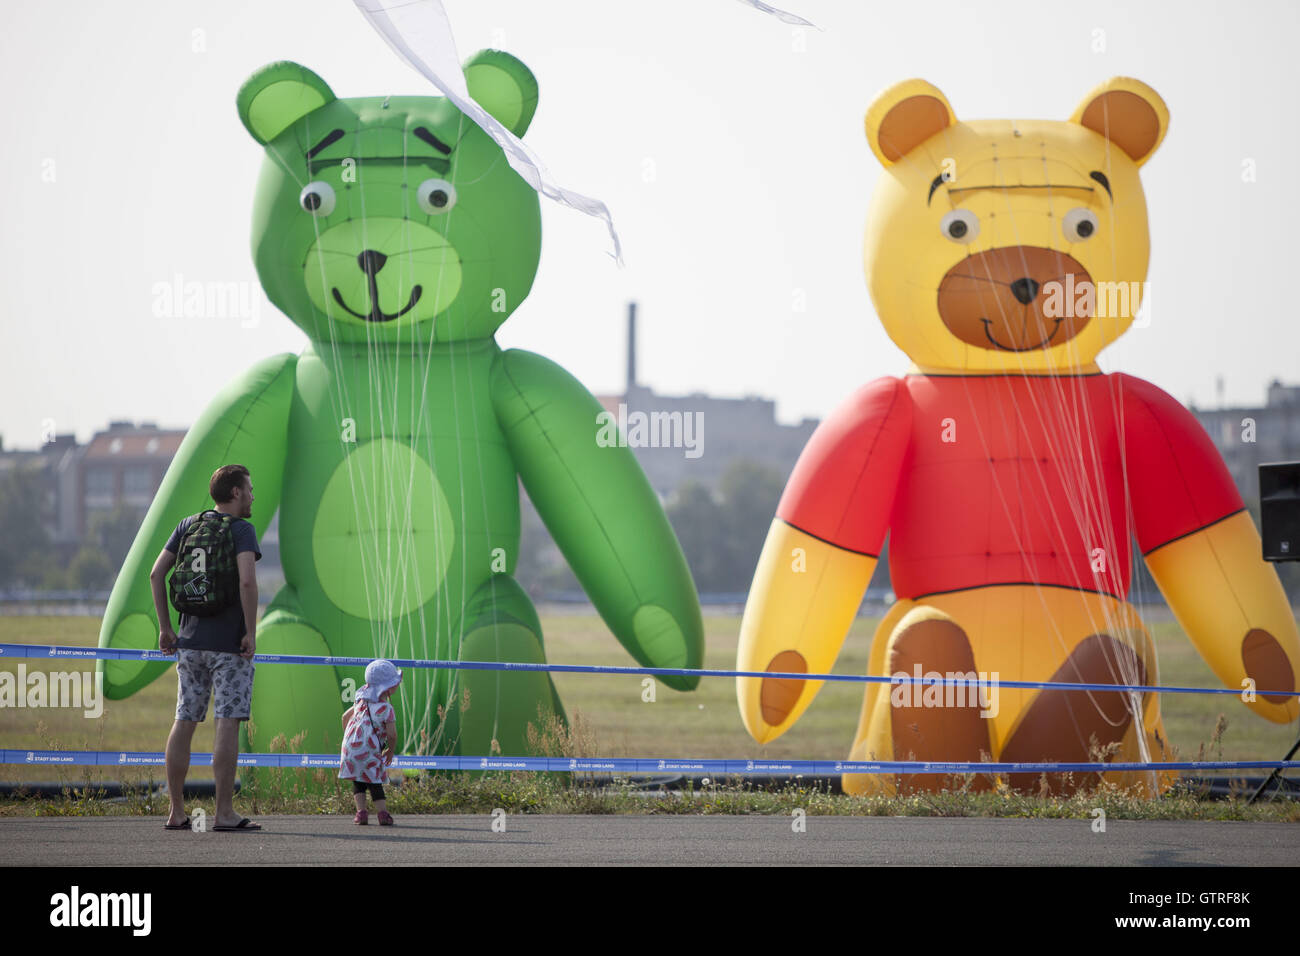 Berlin, Germany. 10th Sep, 2016. Kite festival at tempelhofer feld in Berlin. Credit:  Omer Messinger/ZUMA Wire/Alamy Stock Photo